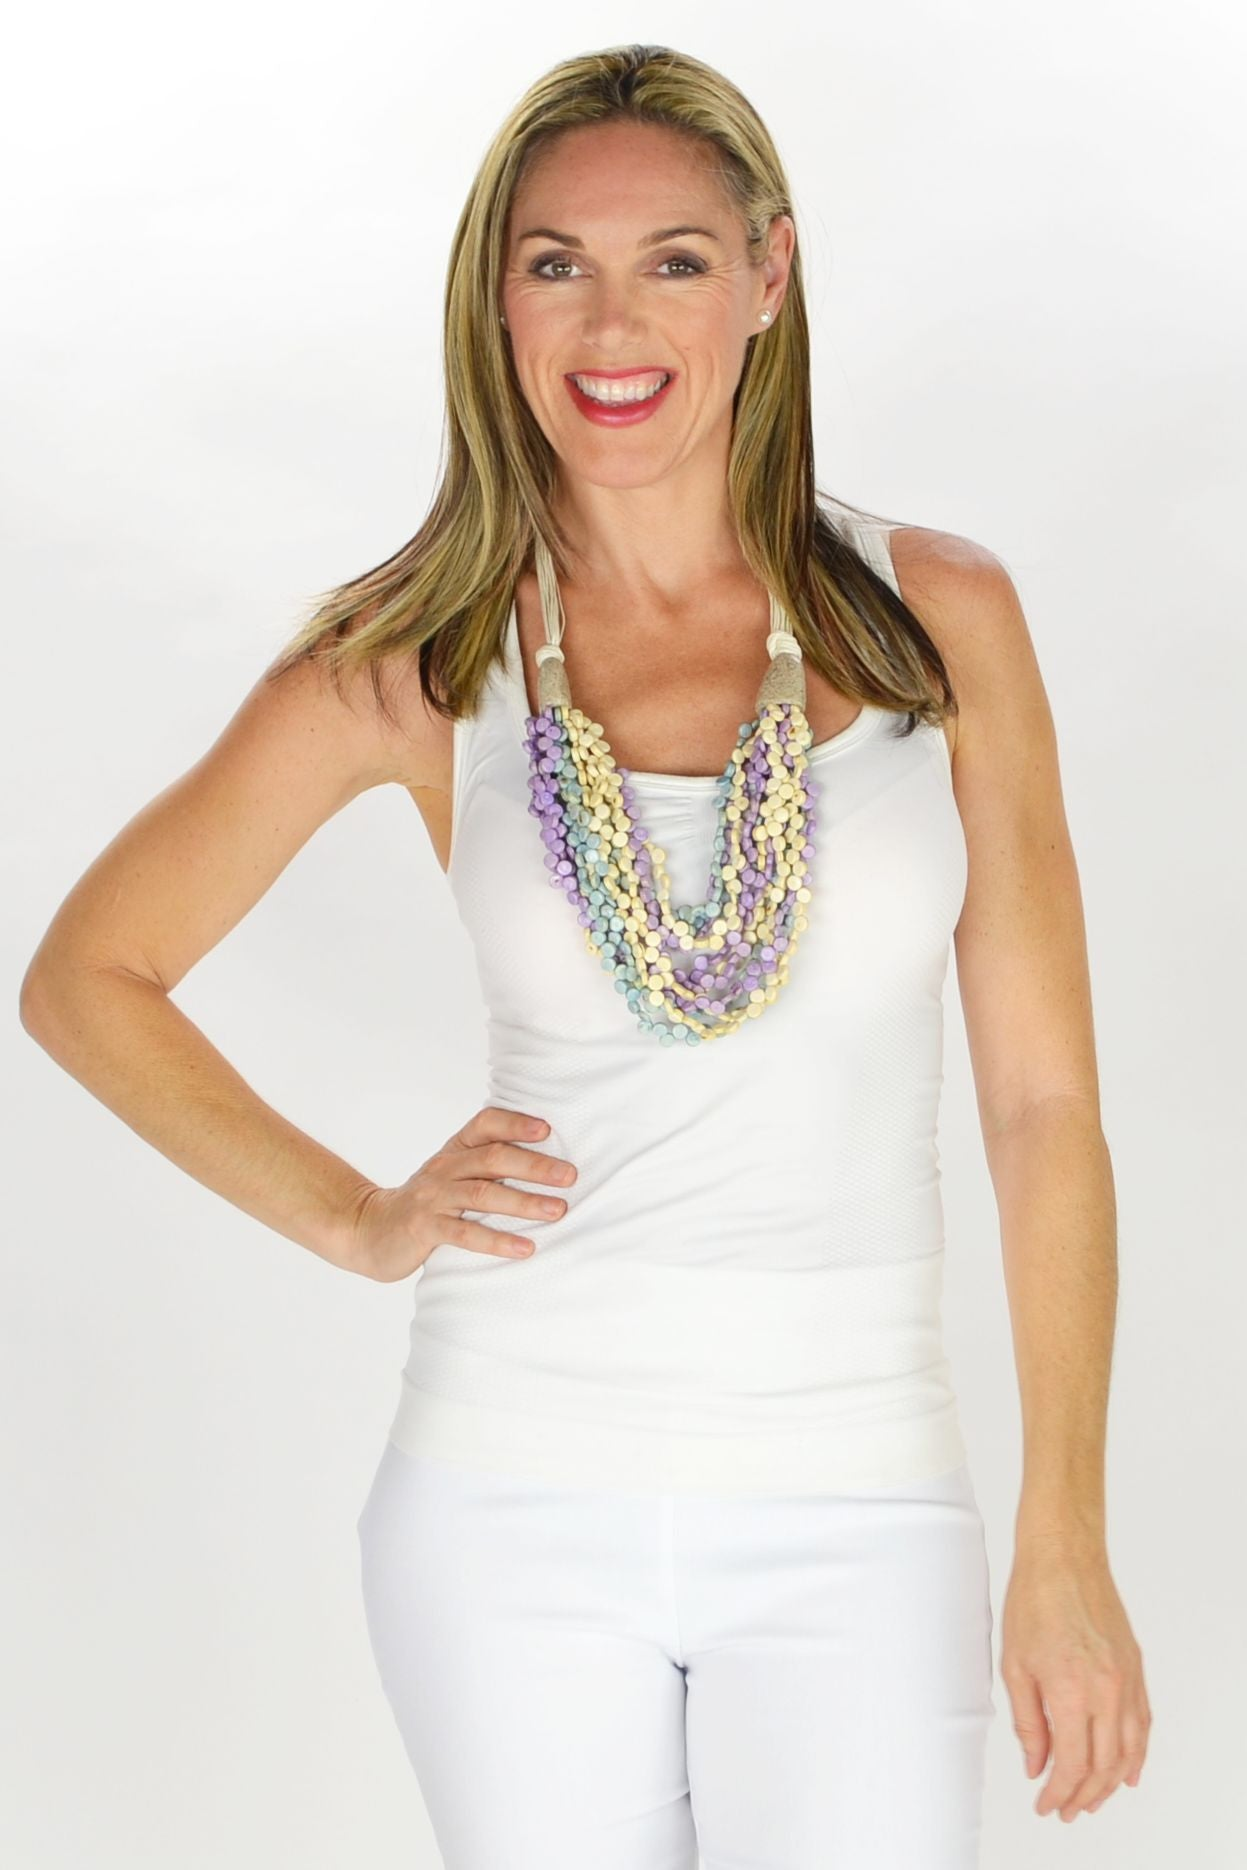 Bali Necklace - at I Love Tunics @ www.ilovetunics.com = Number One! Tunics Destination